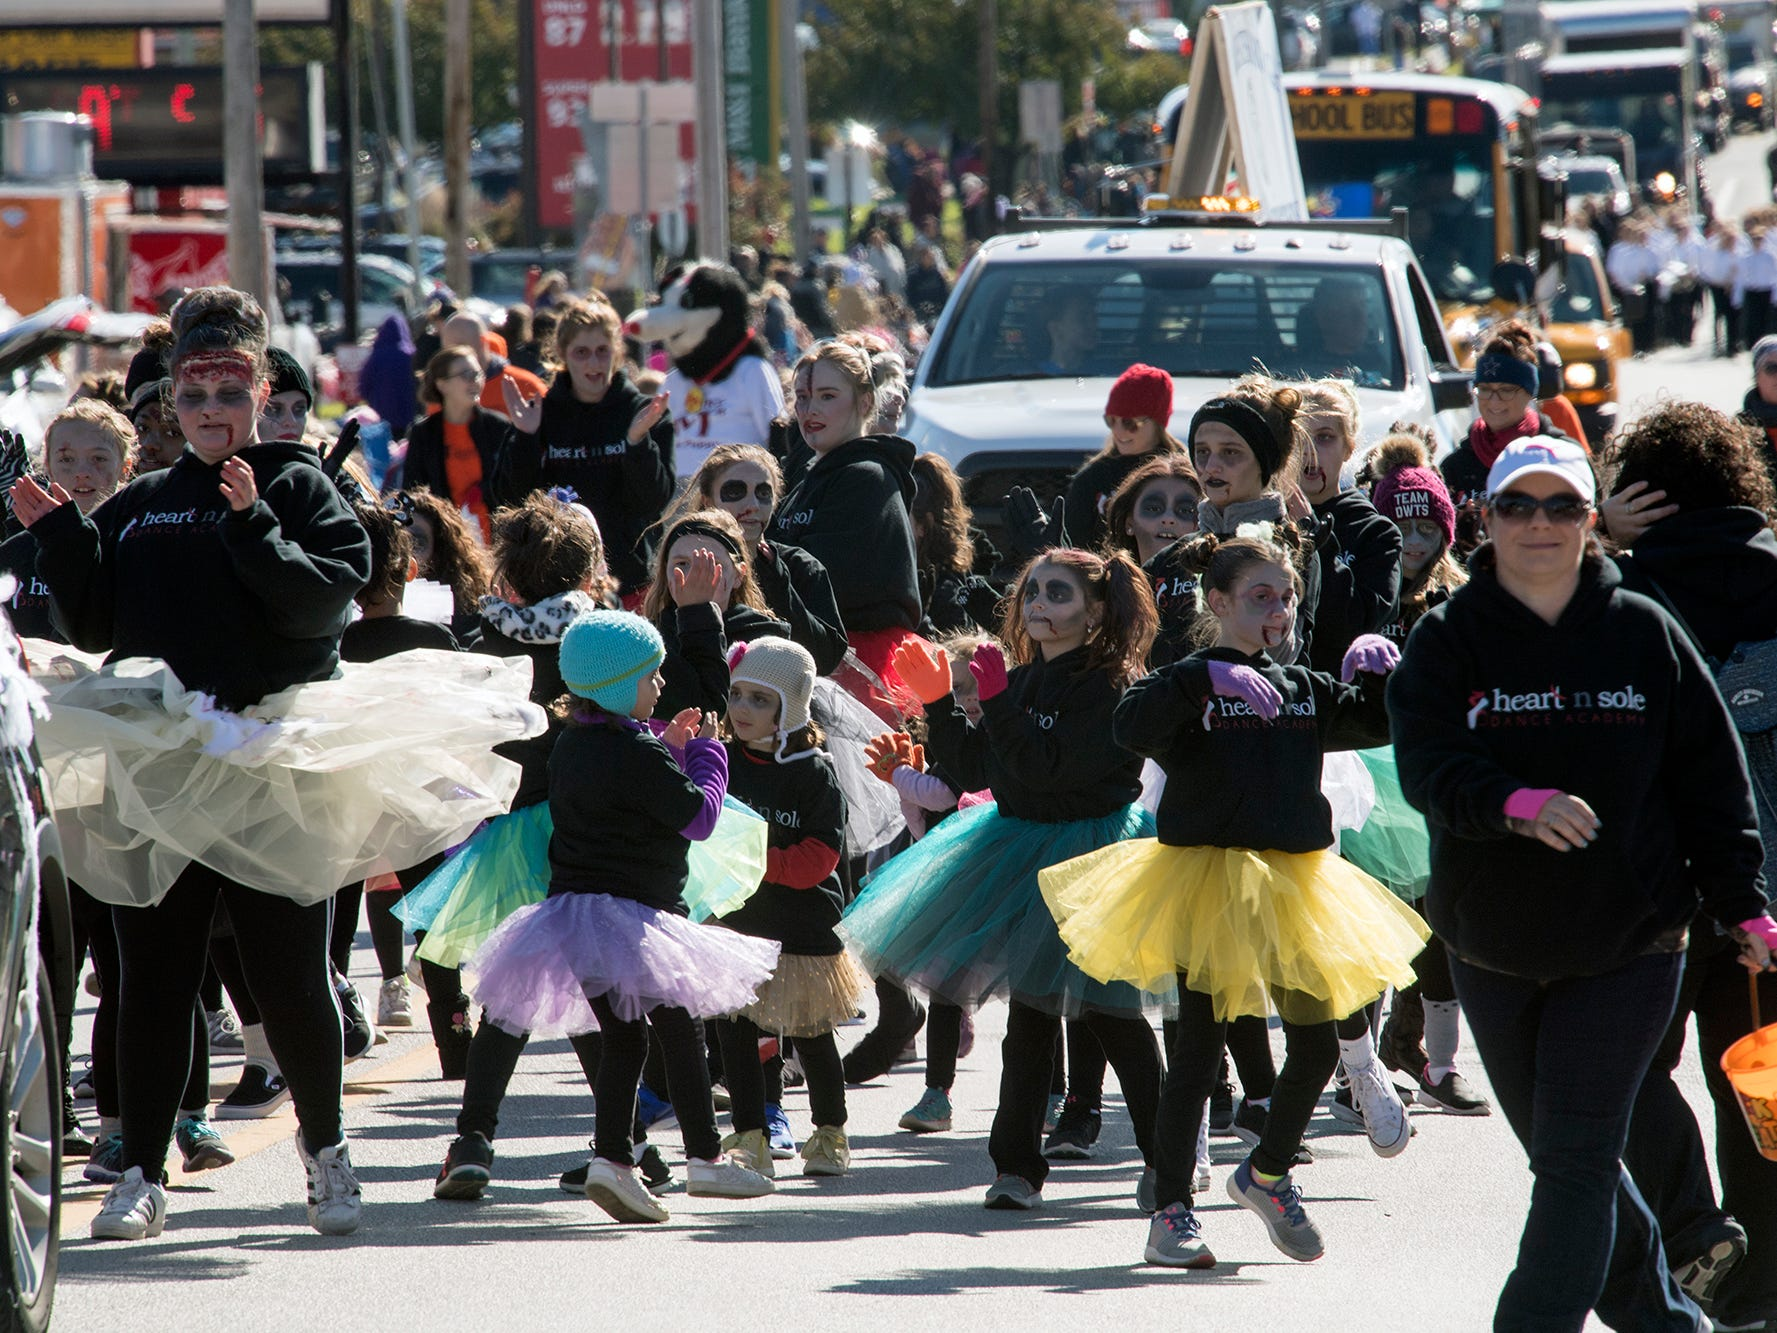 Heart n Sole Dance Academy walks north on Main Street in Manchester during the 53rd Annual Manchester/Mt. Wolf Halloween Parade.